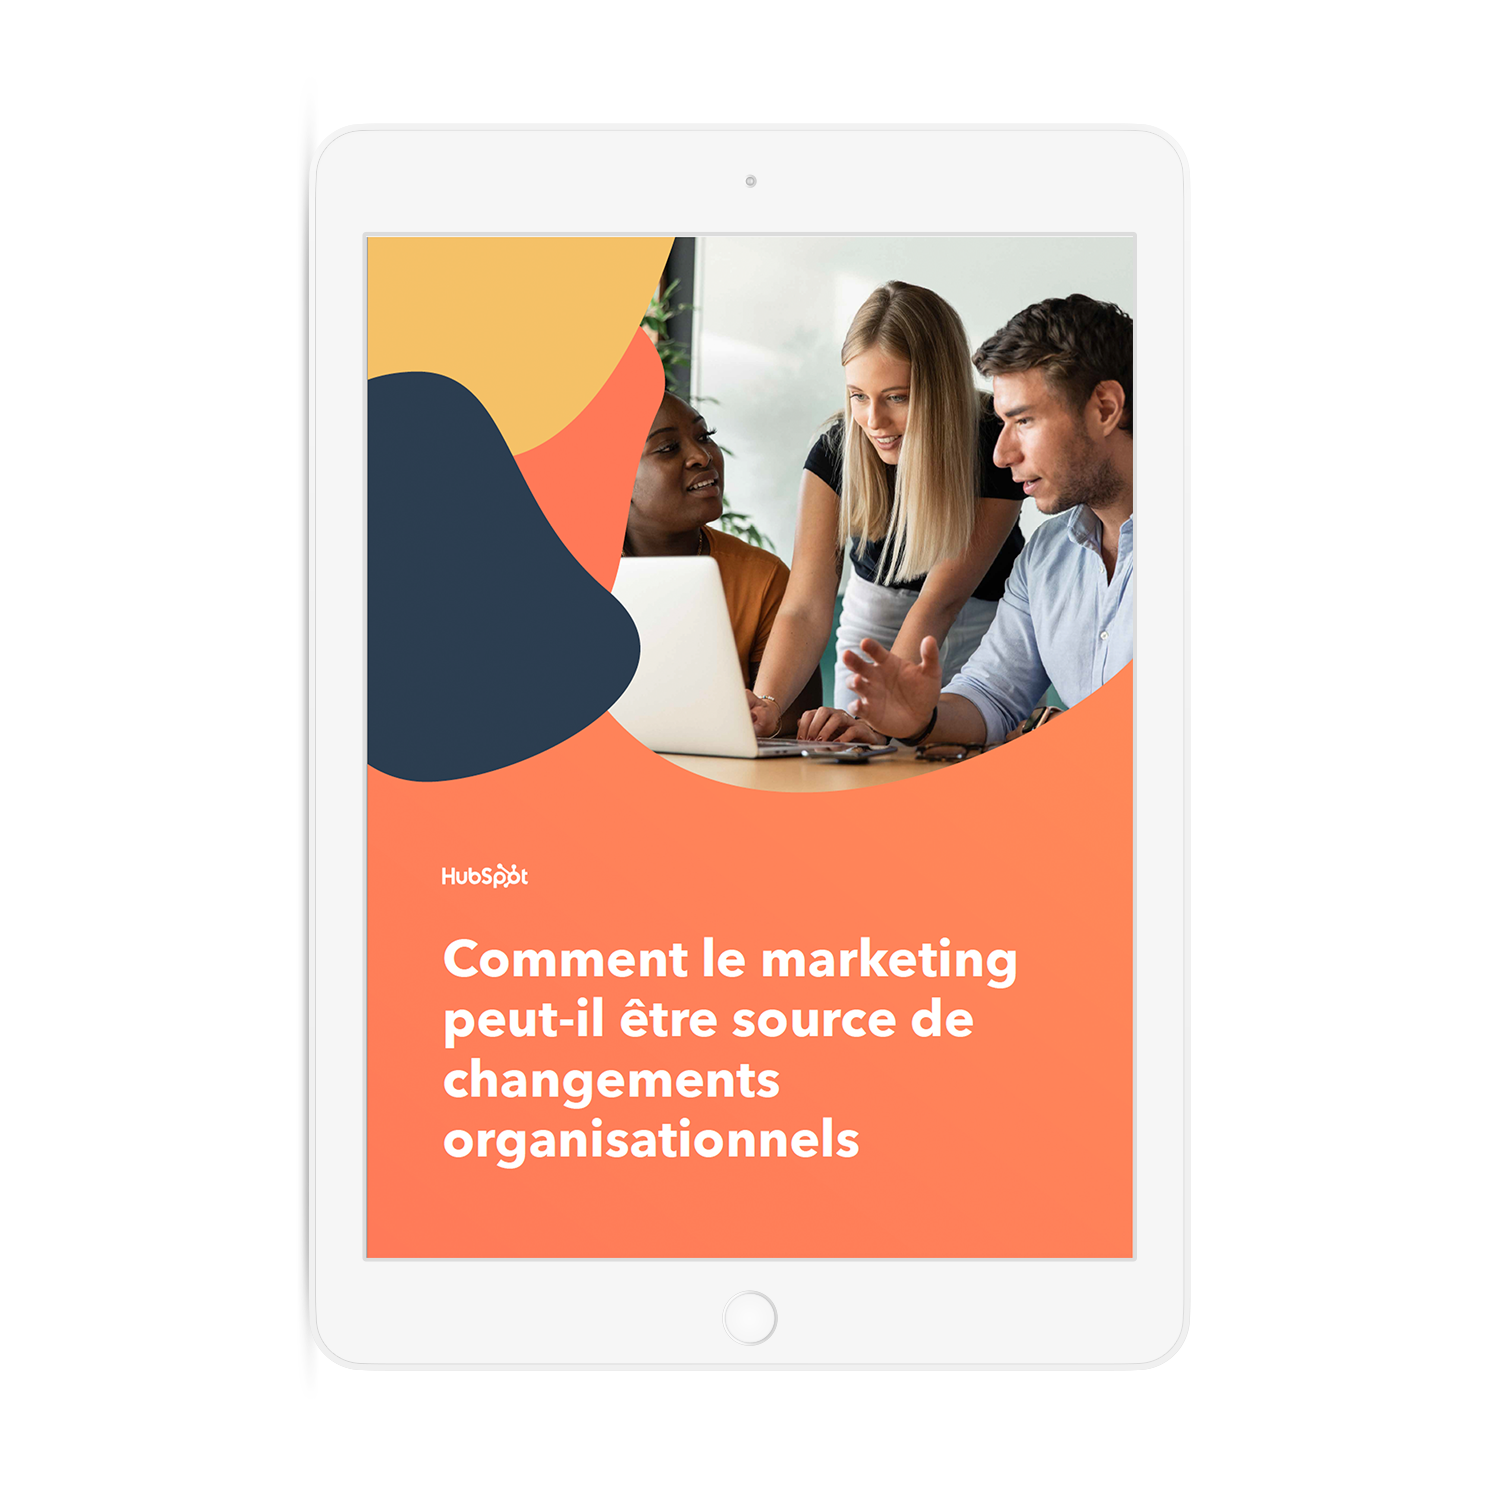 marketing changements organisationnels